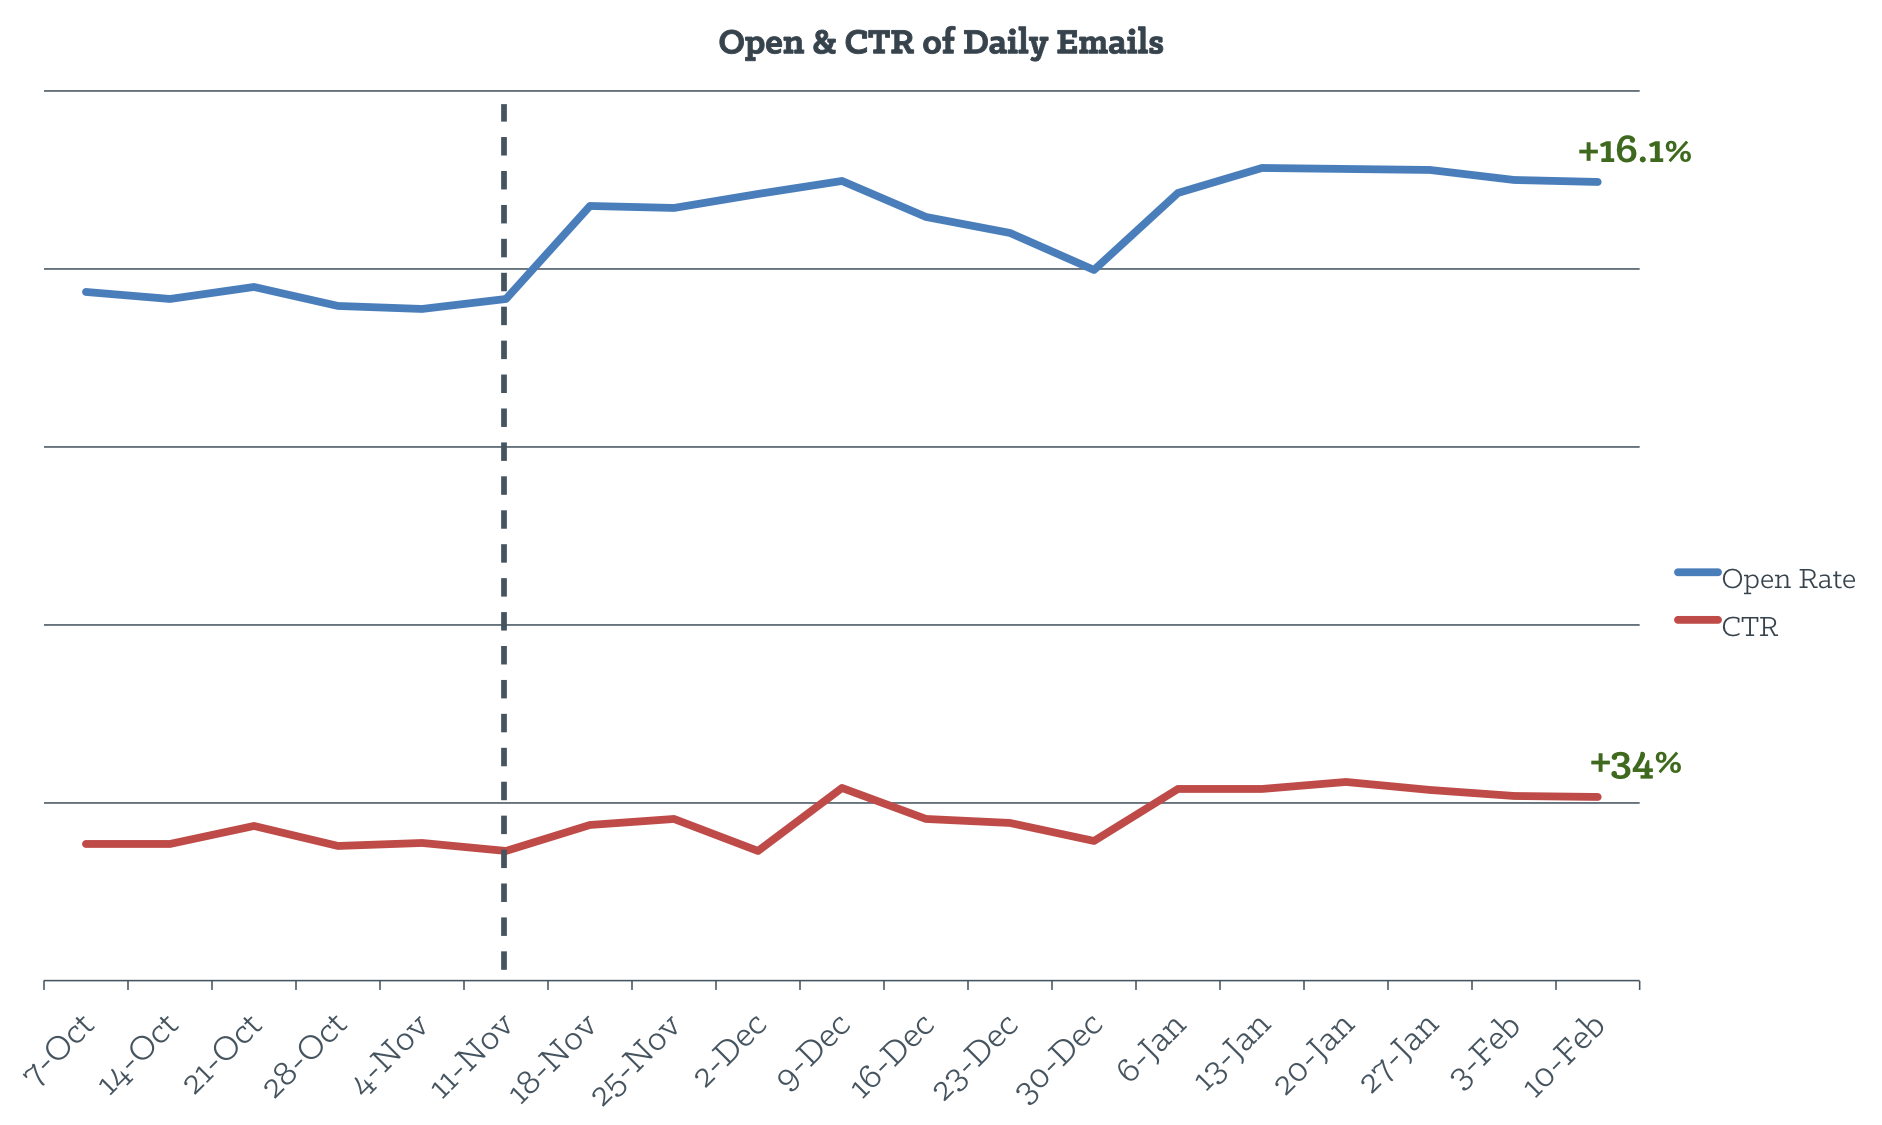 open_rate_and_ctr_of_daily_emails.png